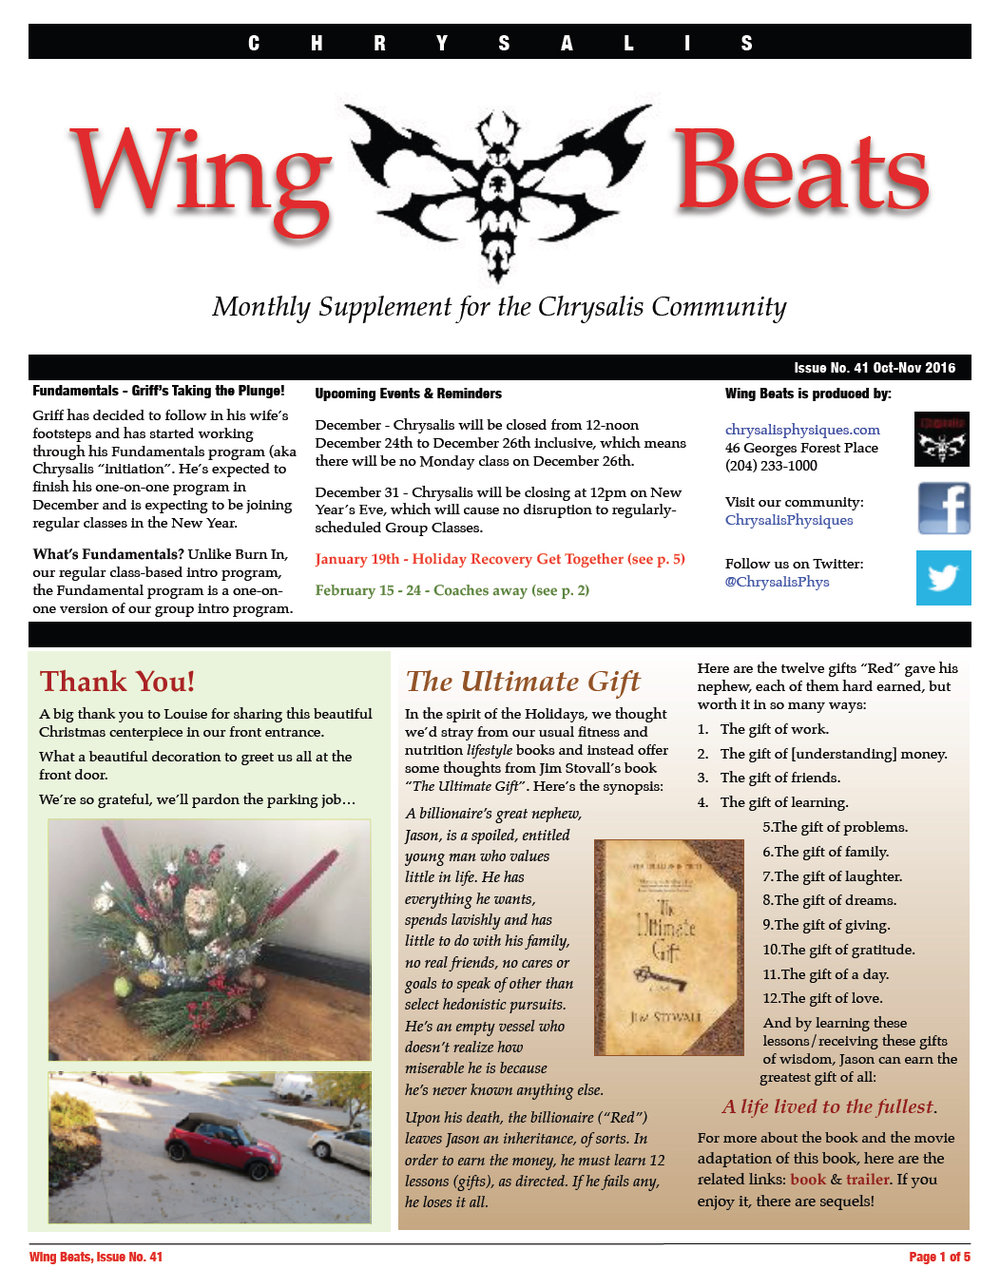 WingBeats Issue #41 - OctNov 2016